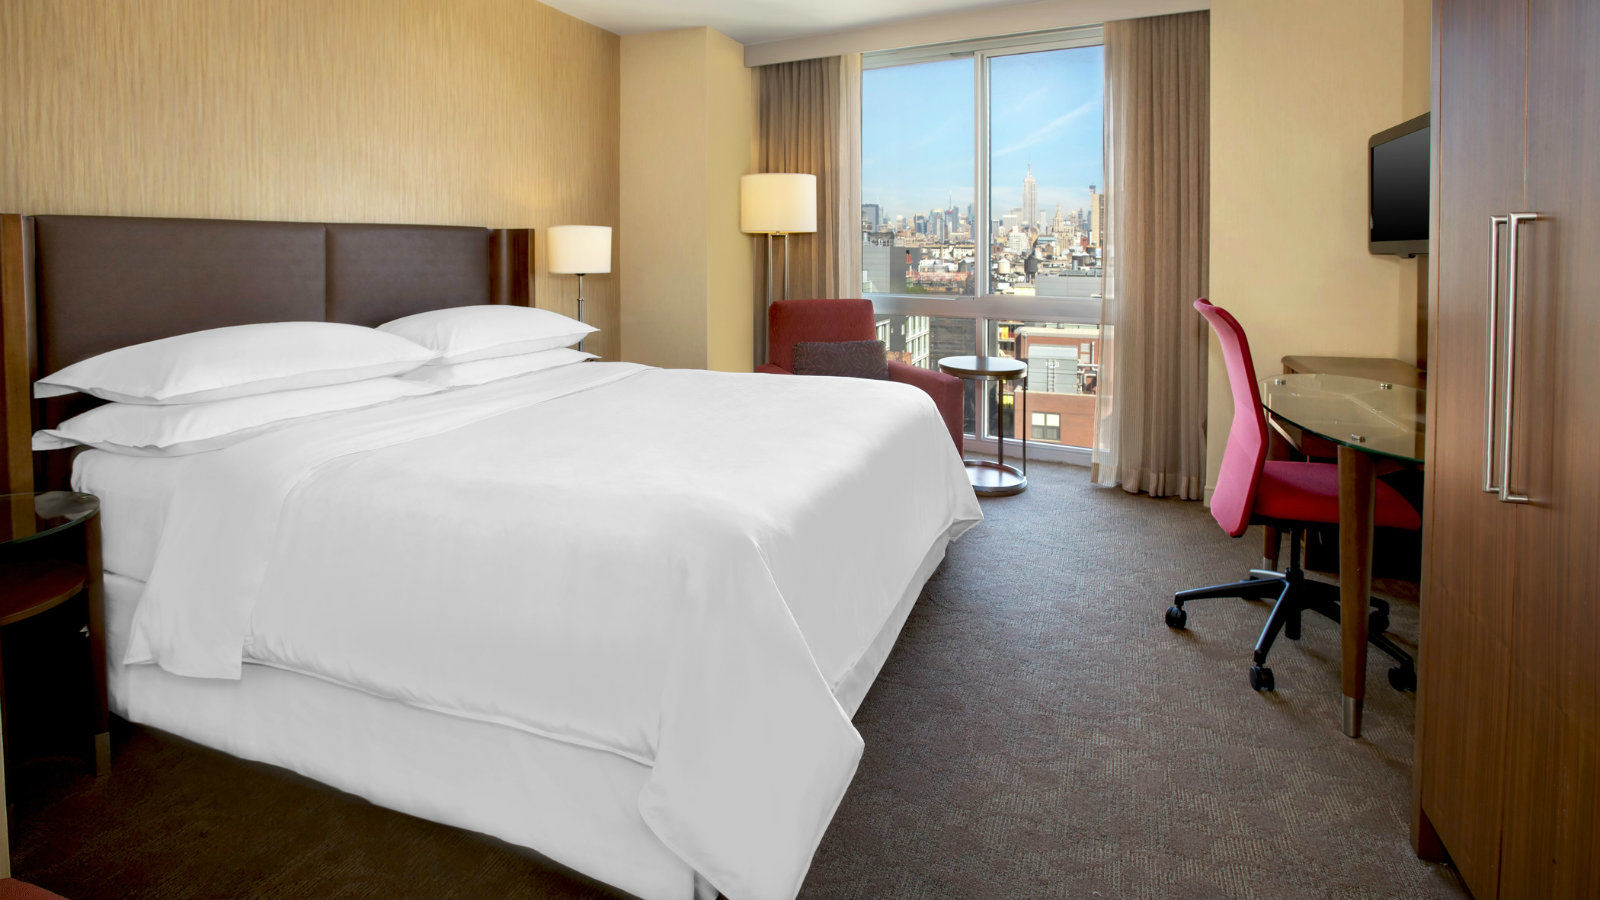 Tribeca Performing Arts Center Hotel - Sheraton Tribeca New York Hotel